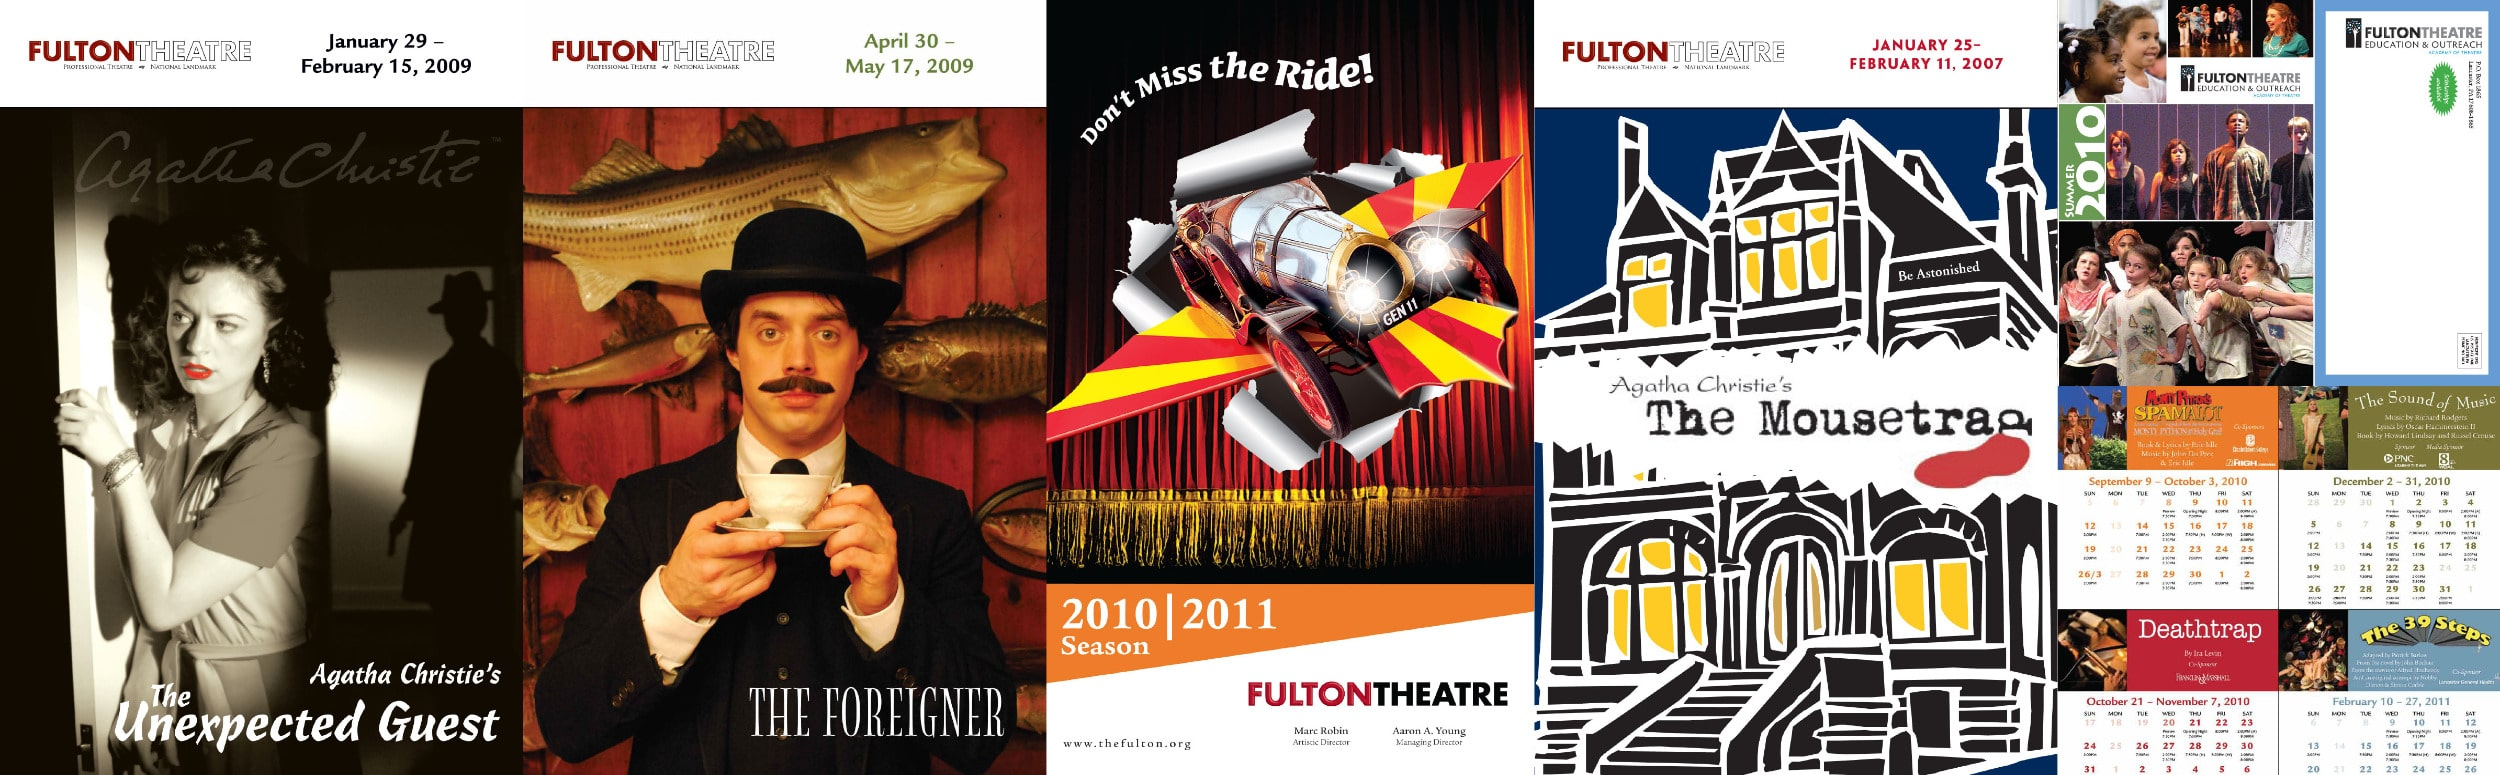 Orbit Creative Fulton Theatre Advertising Case Study